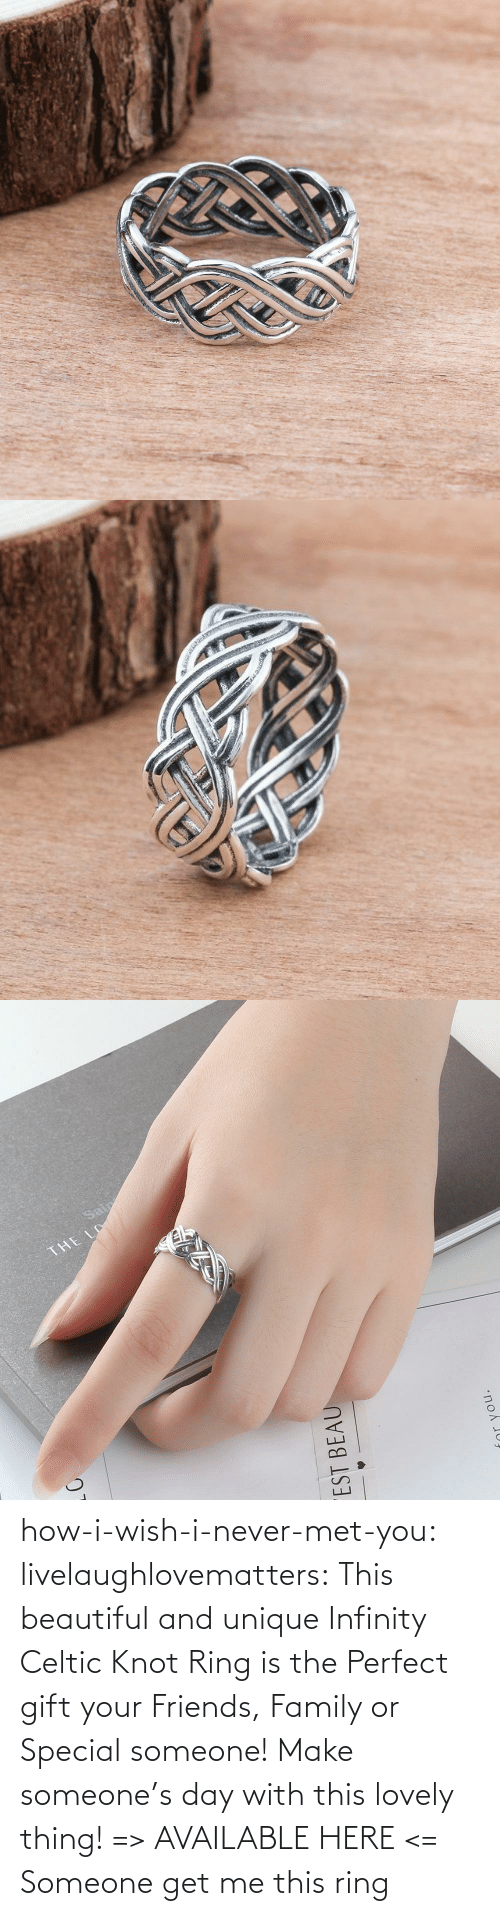 ring: how-i-wish-i-never-met-you: livelaughlovematters:  This beautiful and unique Infinity Celtic Knot Ring is the Perfect gift your Friends, Family or Special someone! Make someone's day with this lovely thing! => AVAILABLE HERE <=    Someone get me this ring